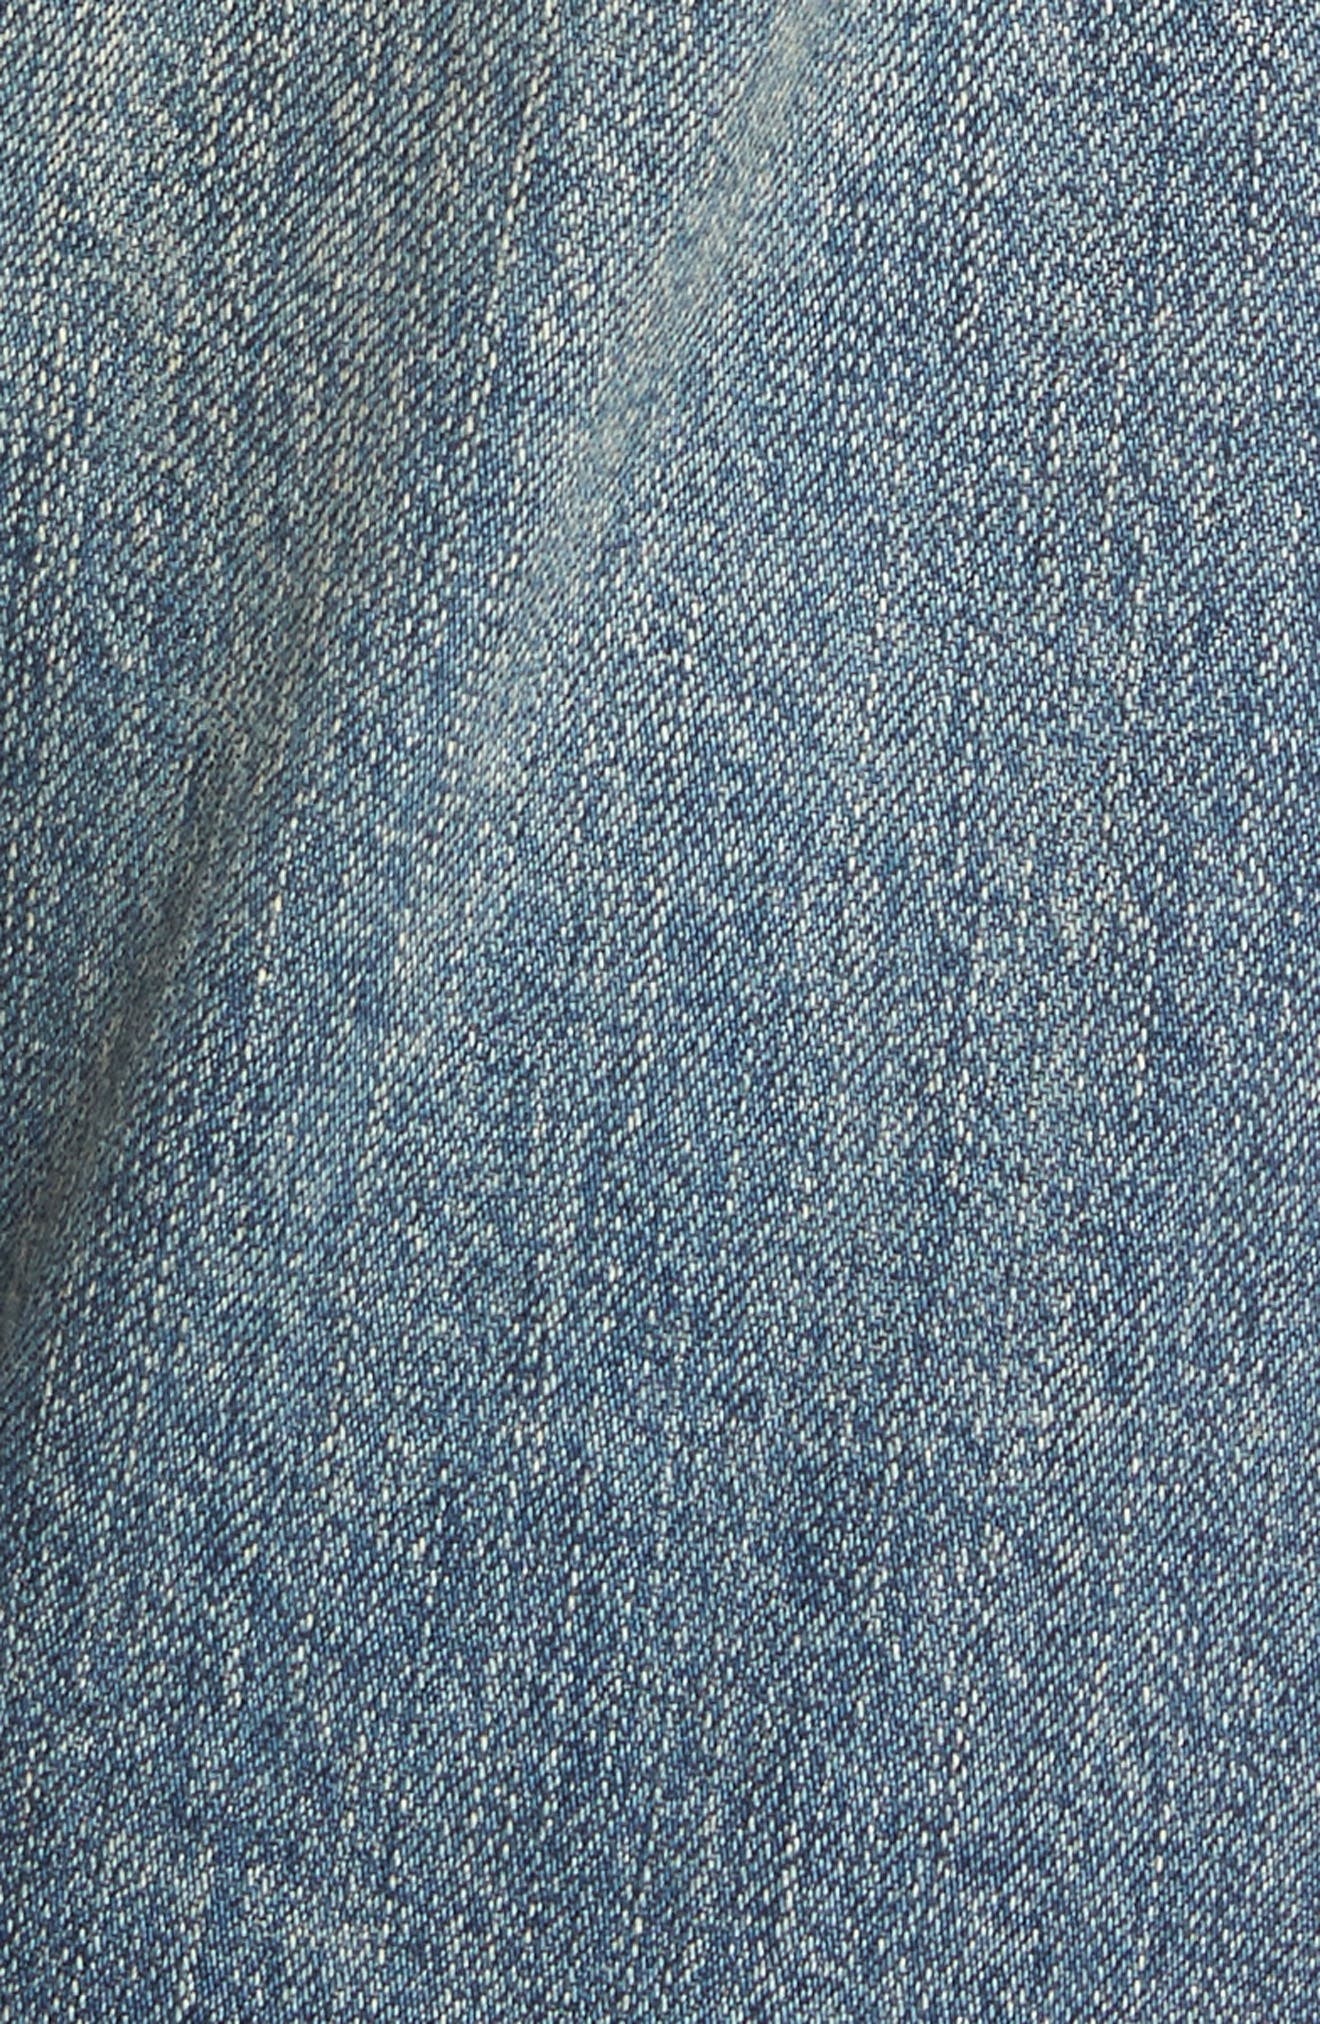 Alternate Image 5  - Citizens of Humanity Emerson Ripped Slim Boyfriend Jeans (Norlander)